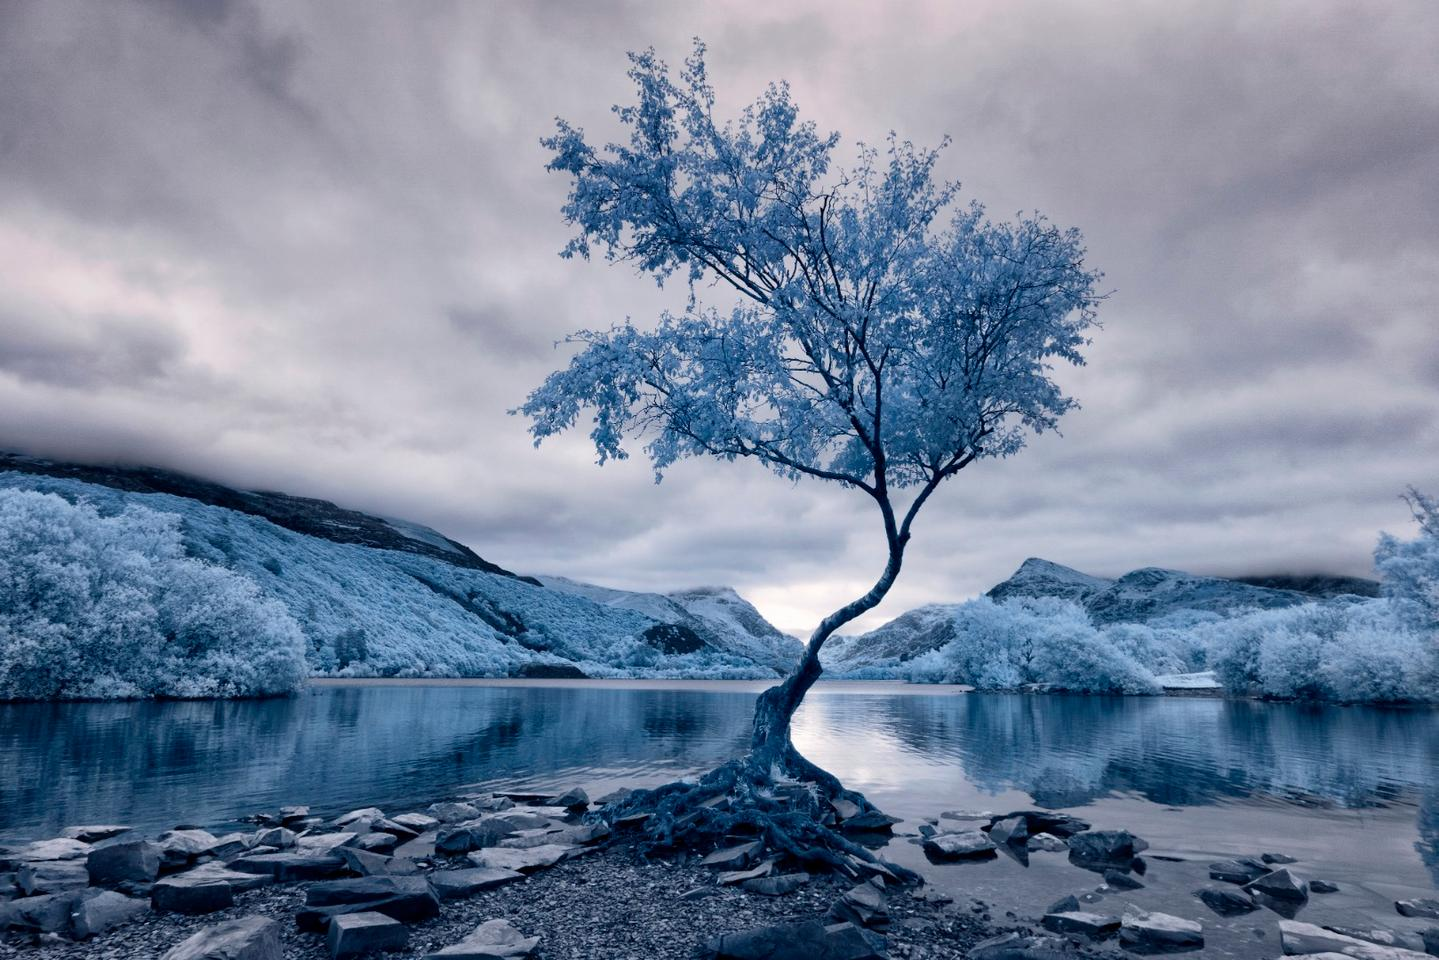 First place winner in the Landscape category - Lonely Tree